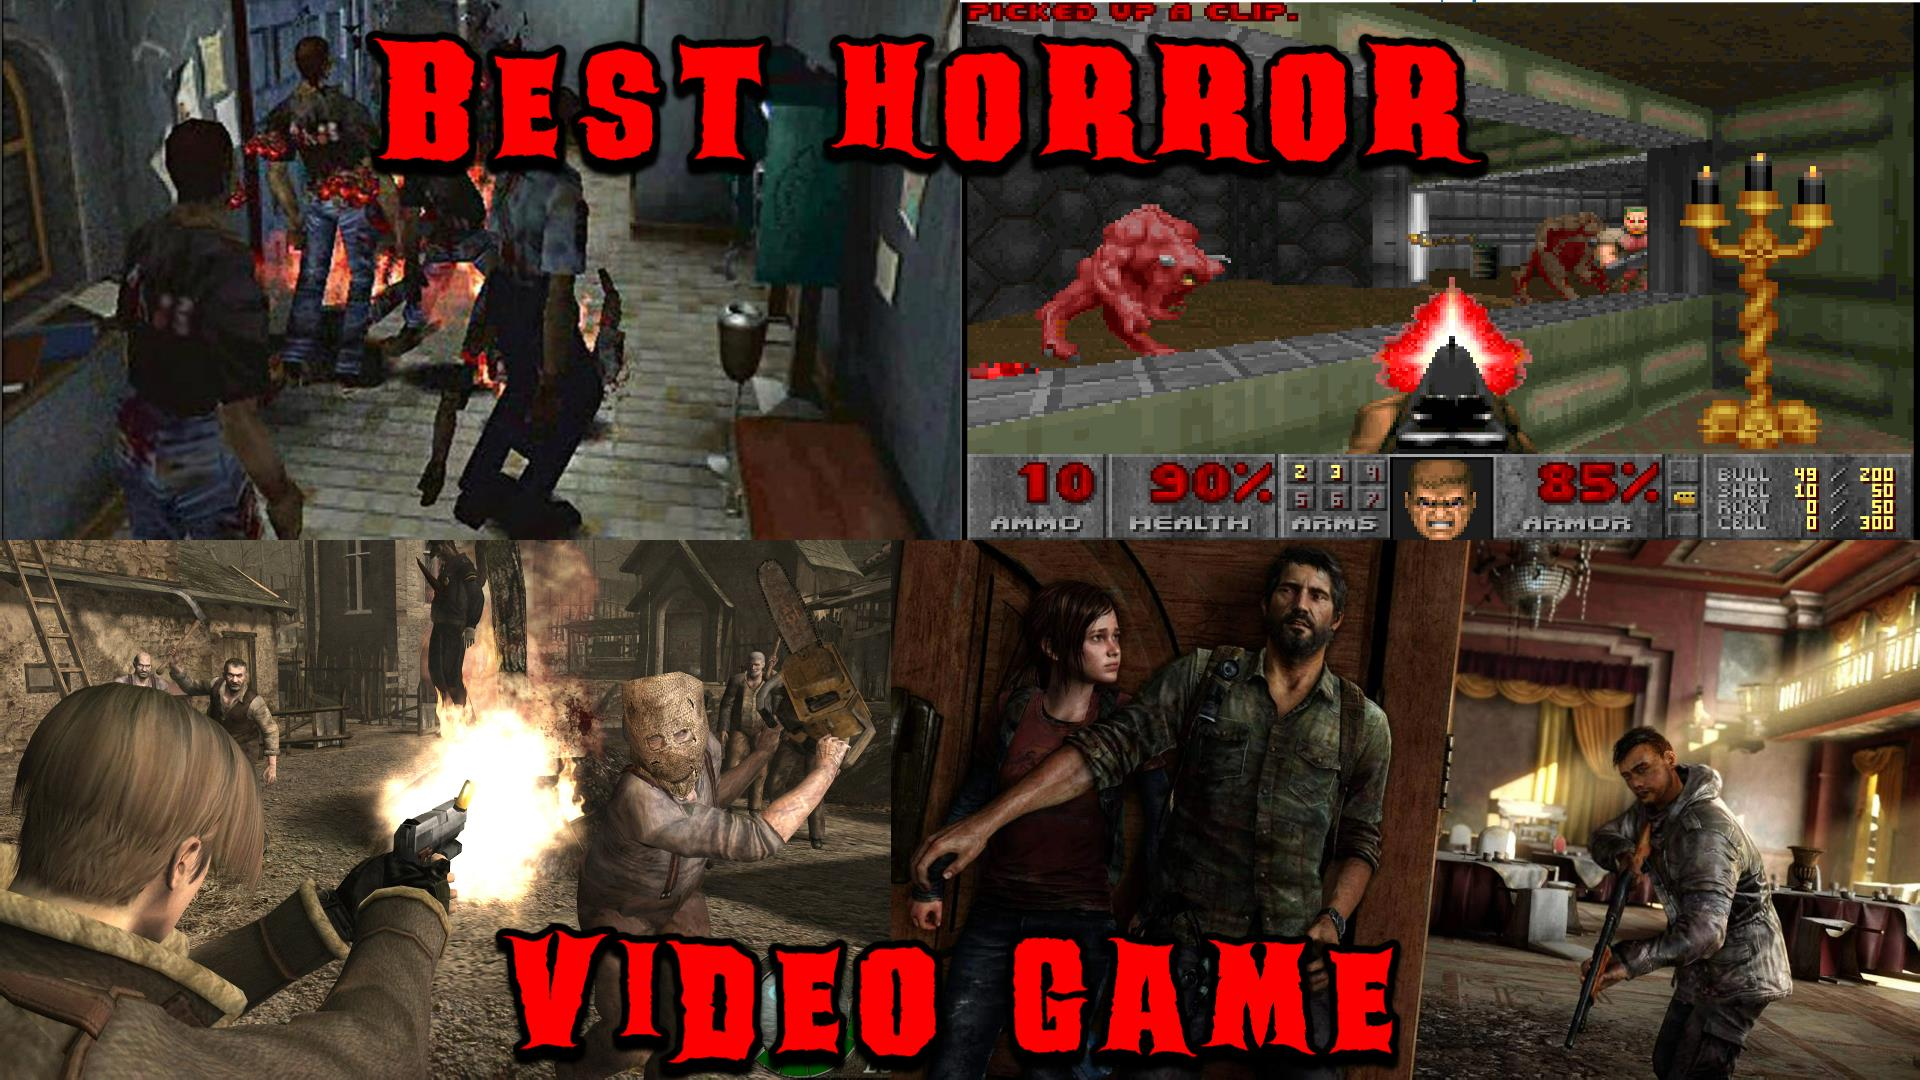 Best Horror Video Game Bracket Final | Drink a Beer and Play